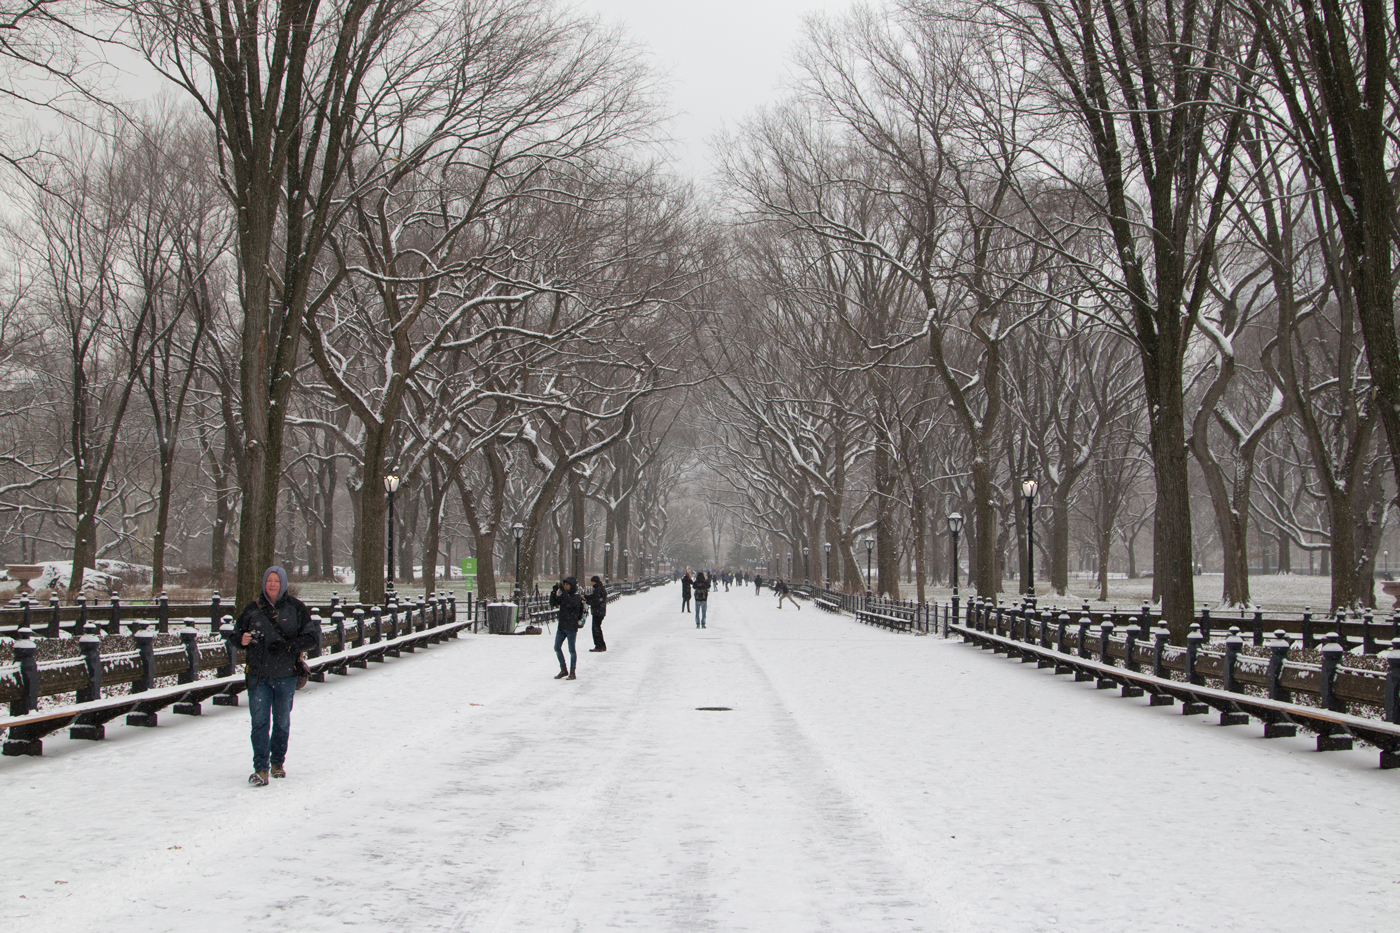 Central Park mall covered in snow